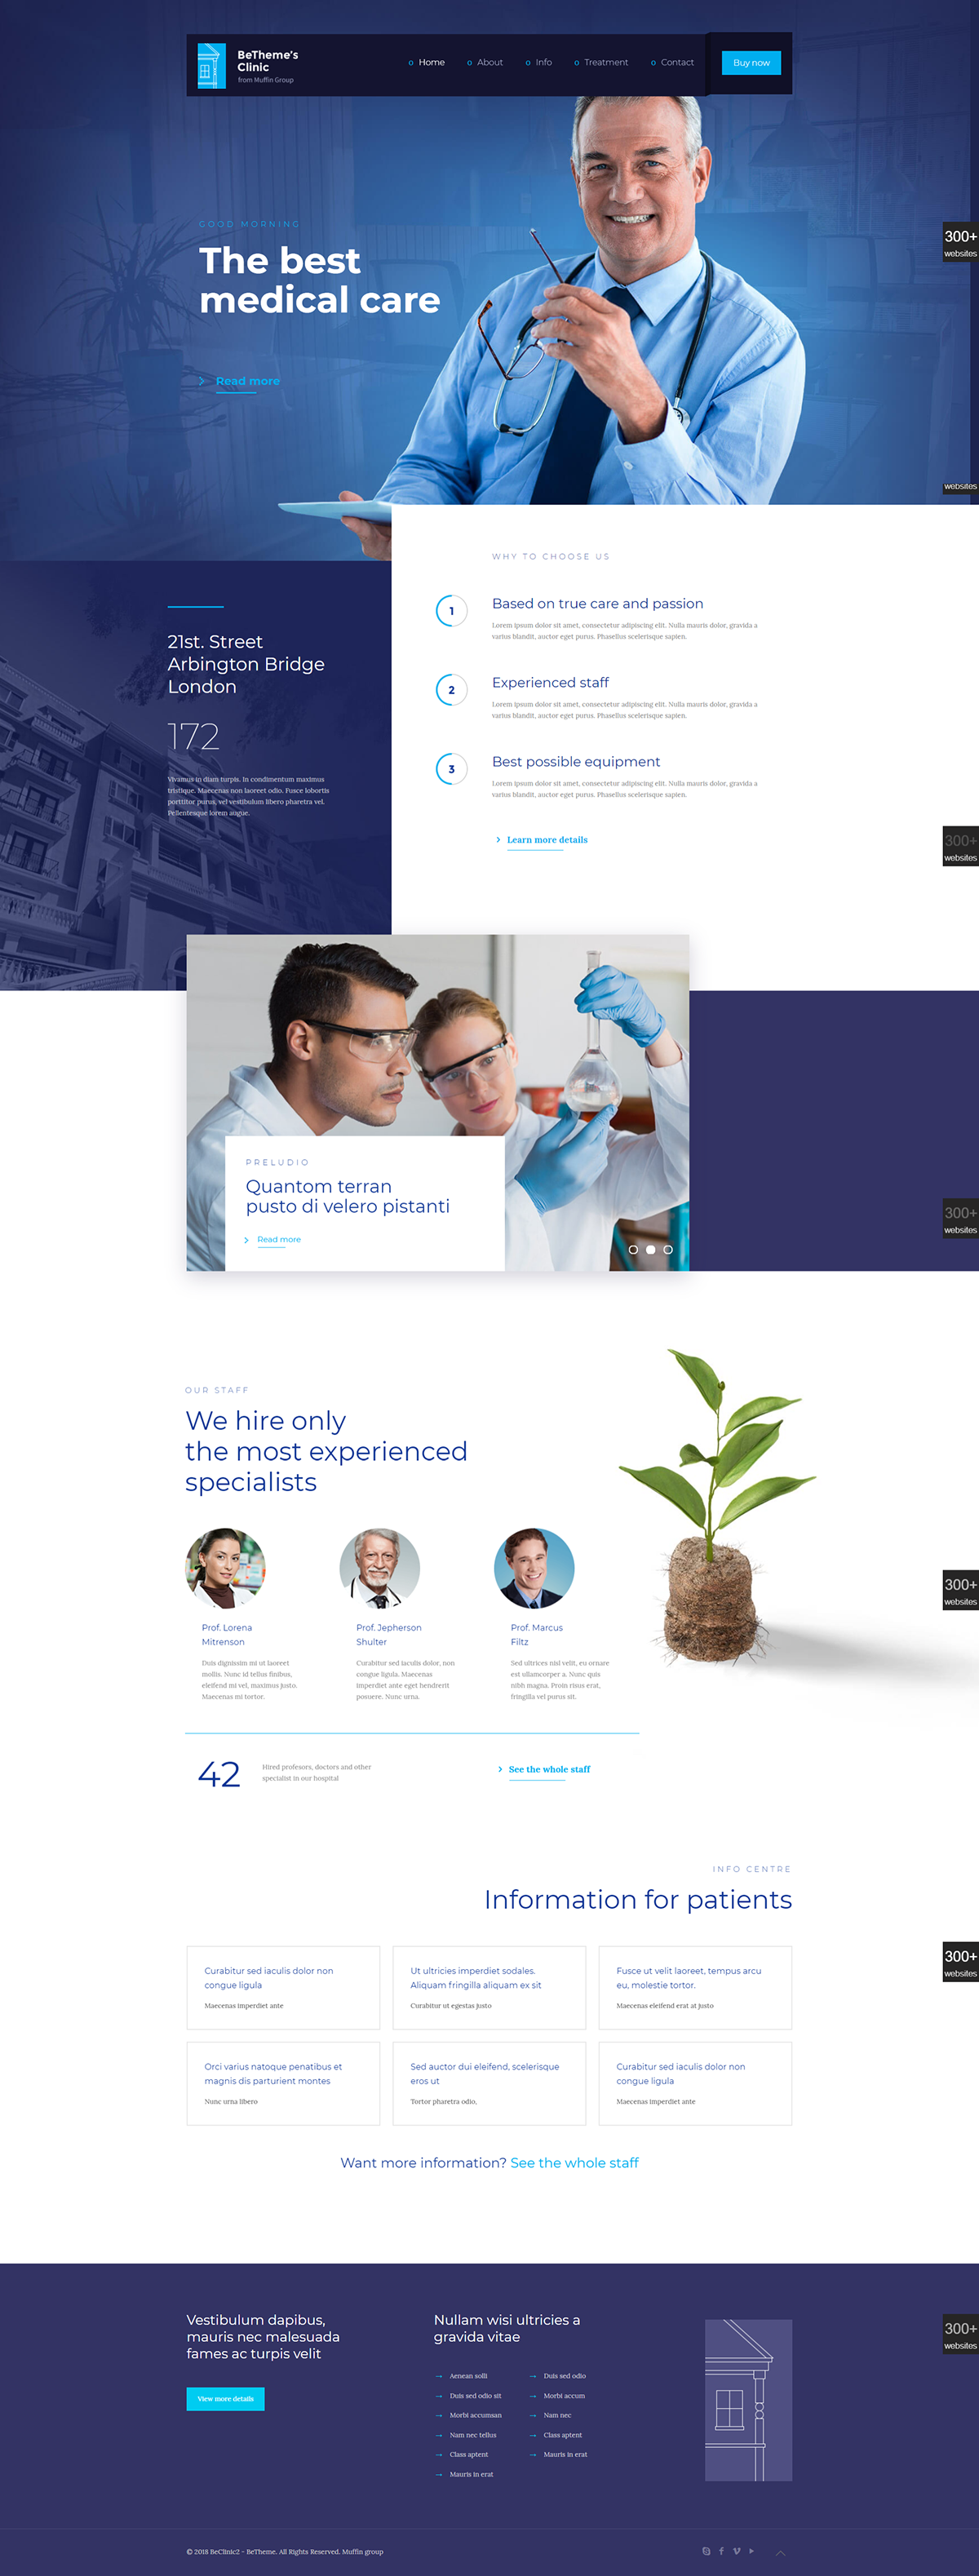 Clinic wordpress business website template design on behance contact me for web development service mehedidityahoo clinic wordpress website wajeb